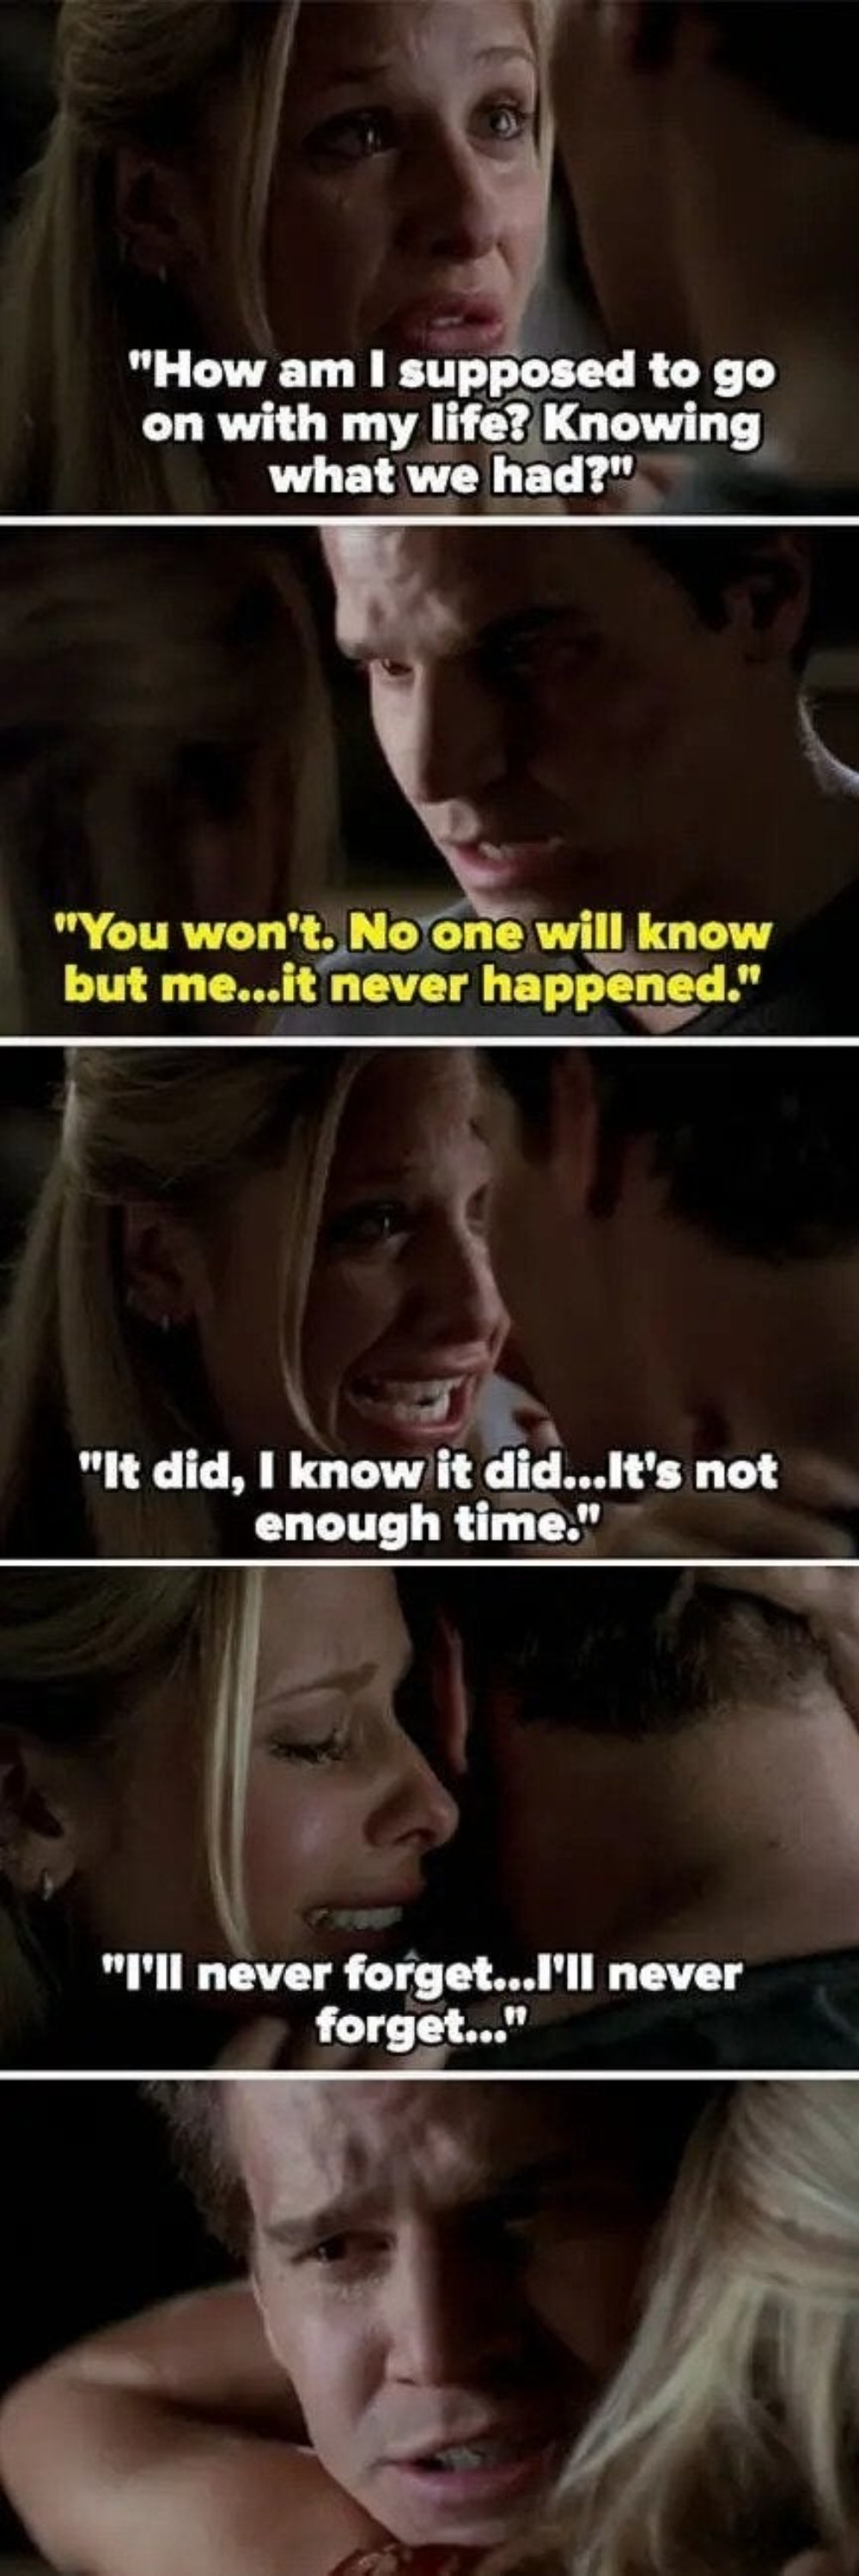 """Buffy asks how to move on with her life and Angel says she'll forget and that it never happened, but Buffy says it did and that it's not enough time, and then repeats """"I'll never forget"""" as she hugs Angel"""